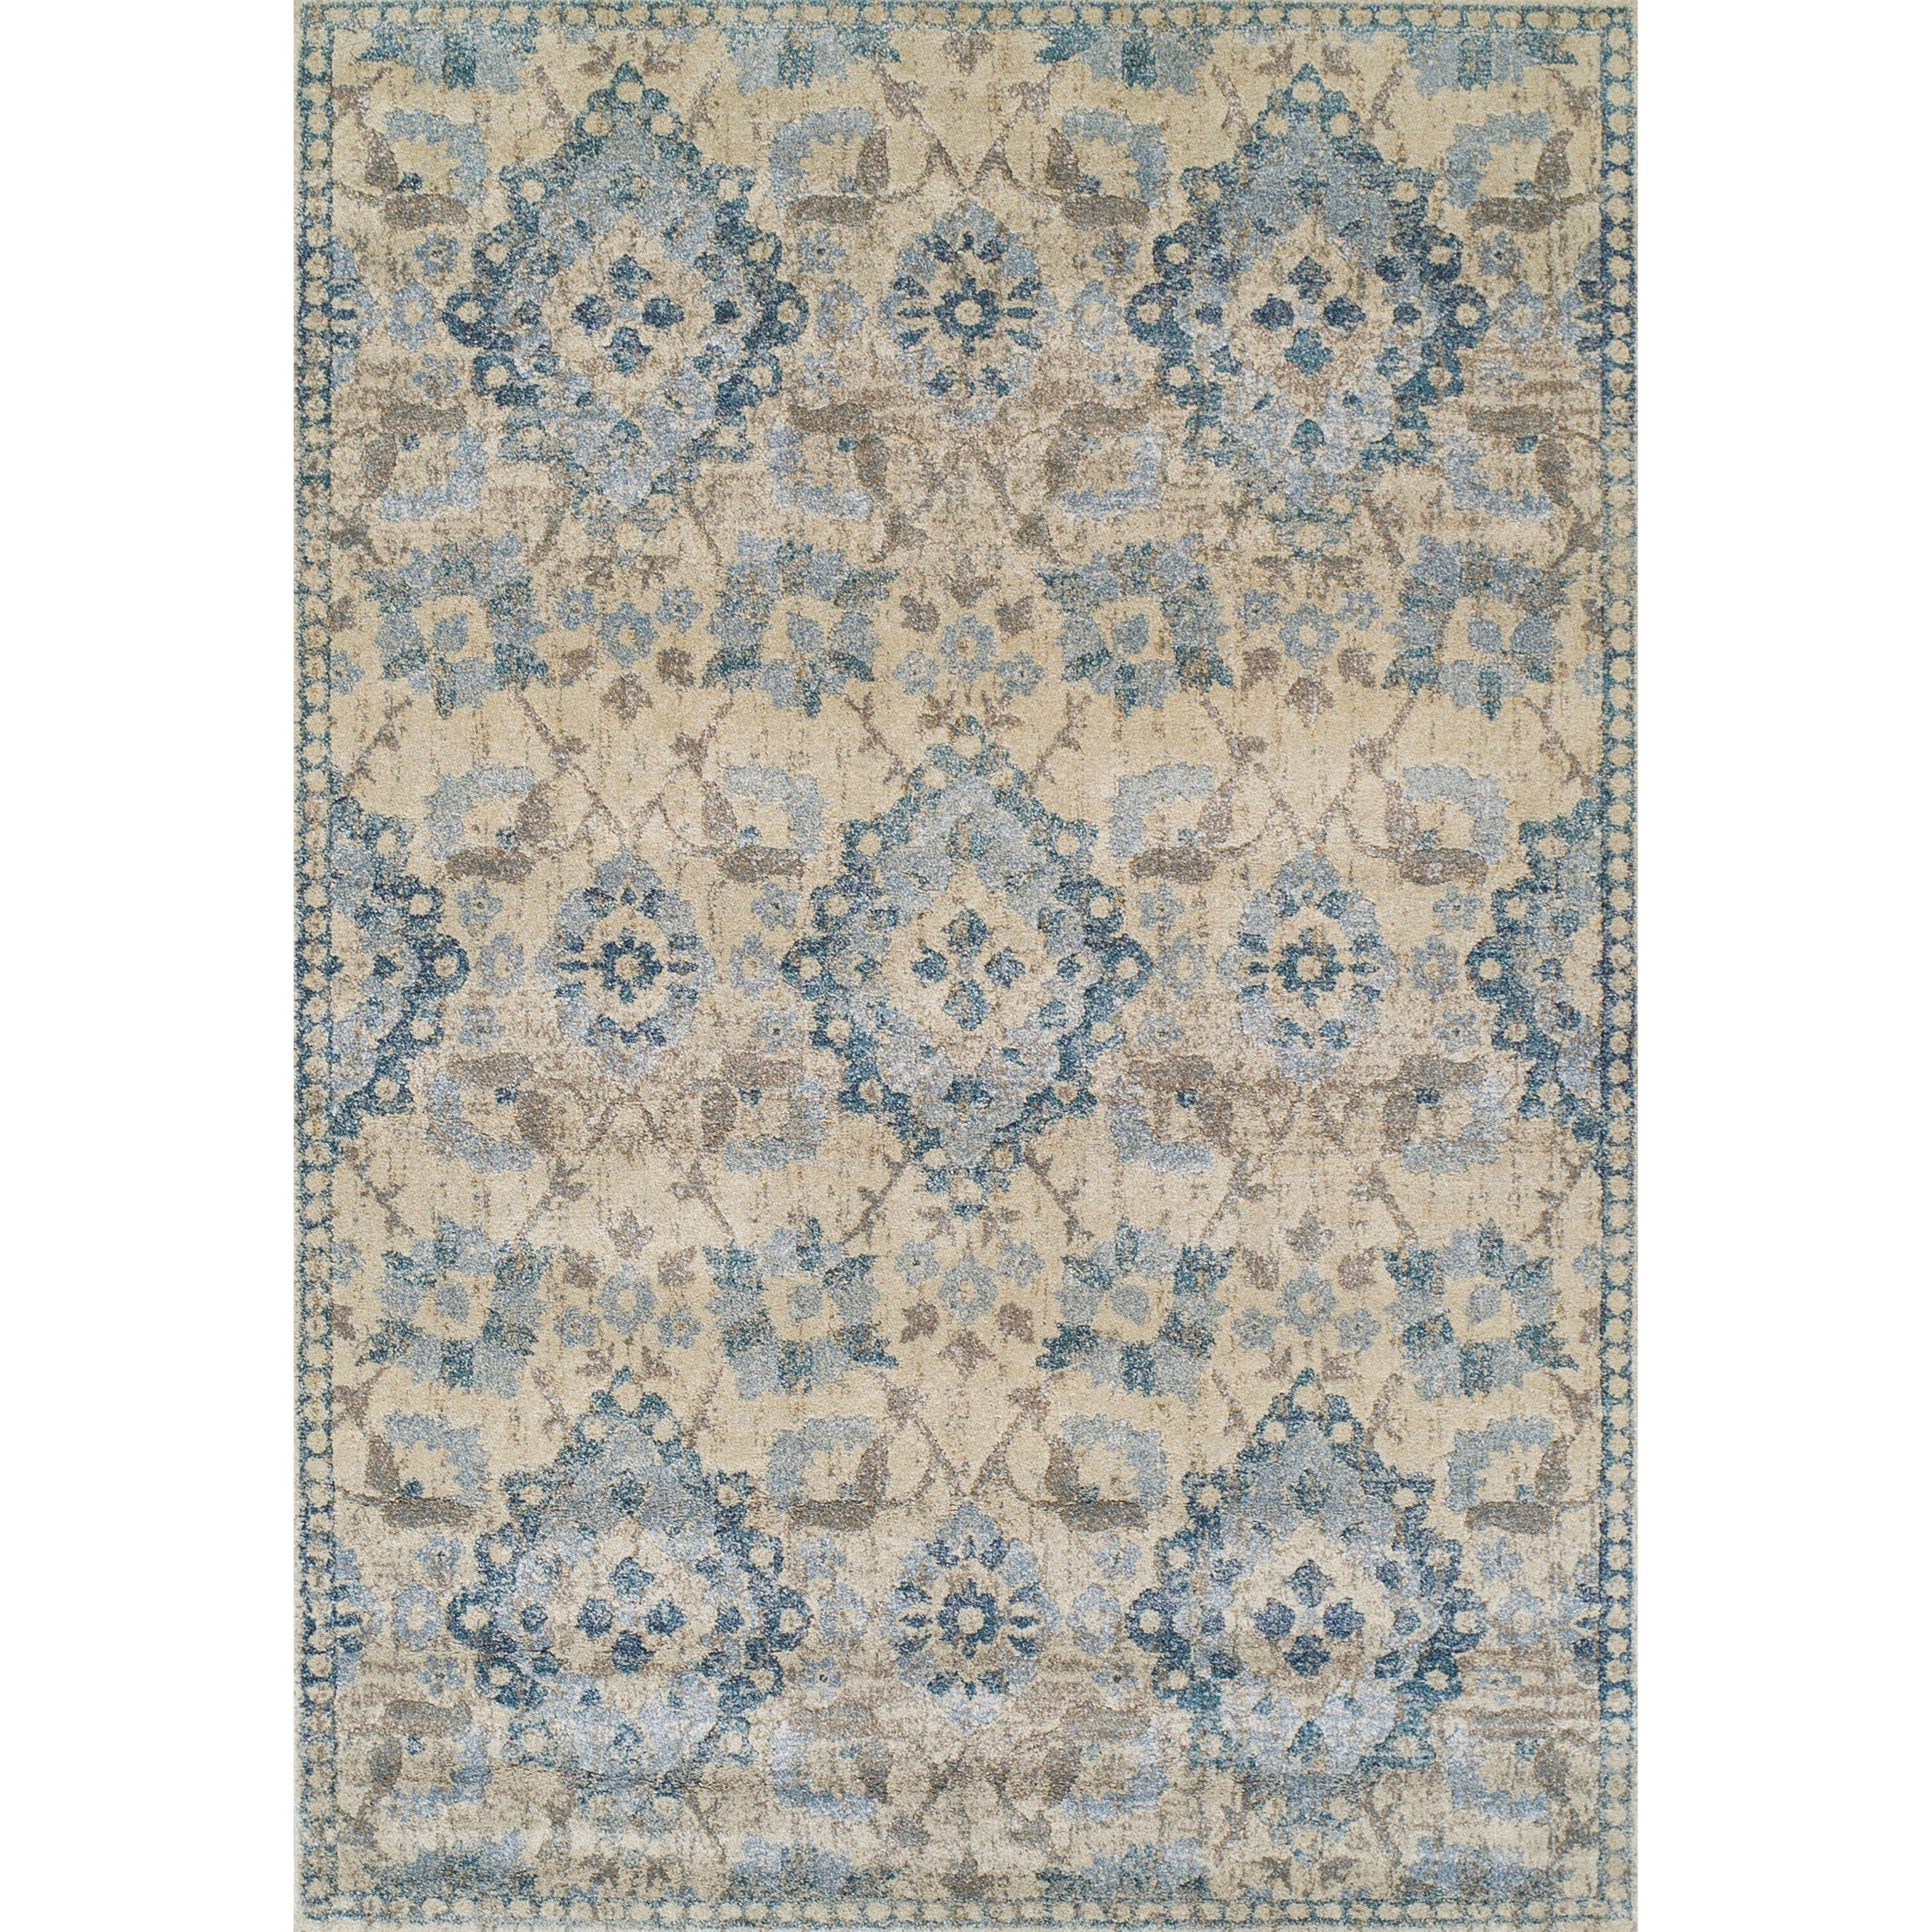 """Antigua Linen 5'3""""X7'7"""" Area Rug by Dalyn at Sadler's Home Furnishings"""